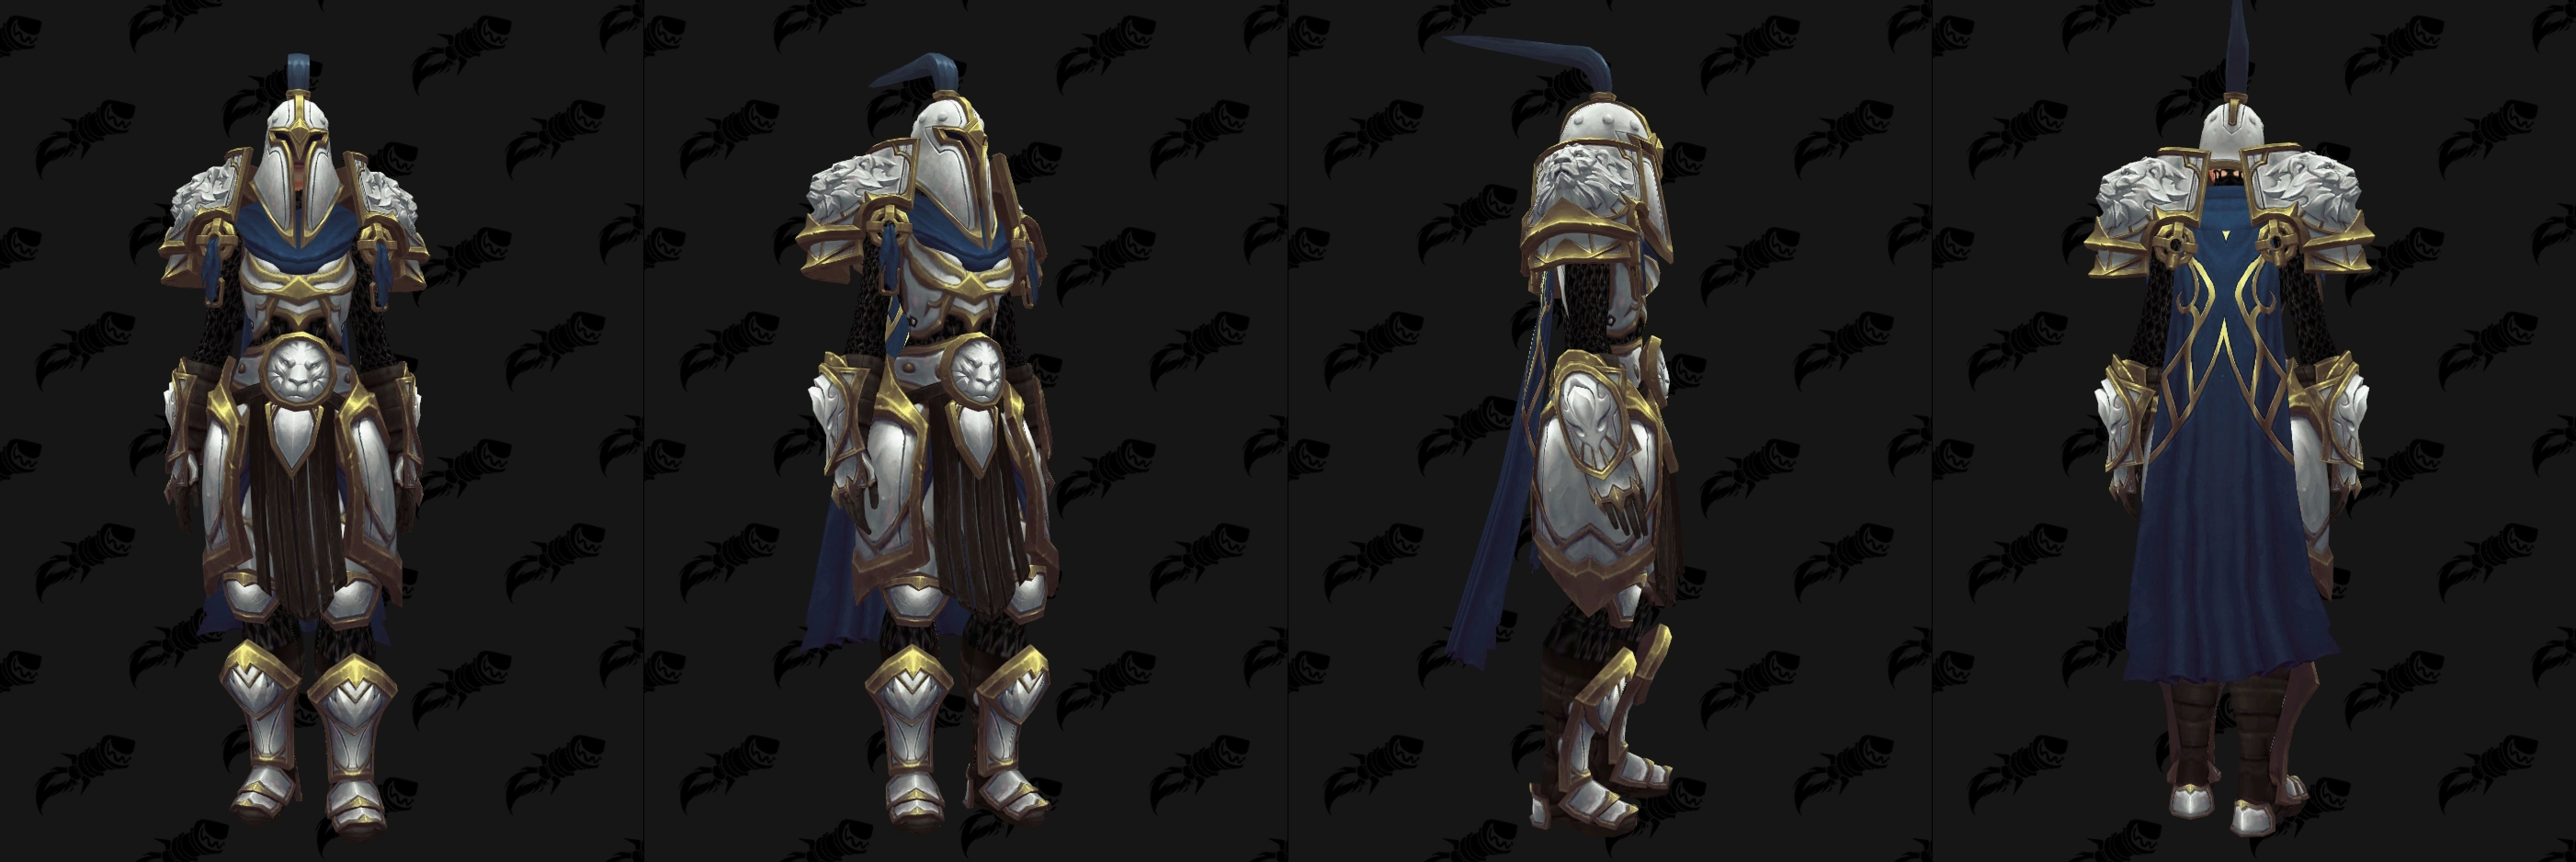 holy priest secret artifact appearance guide